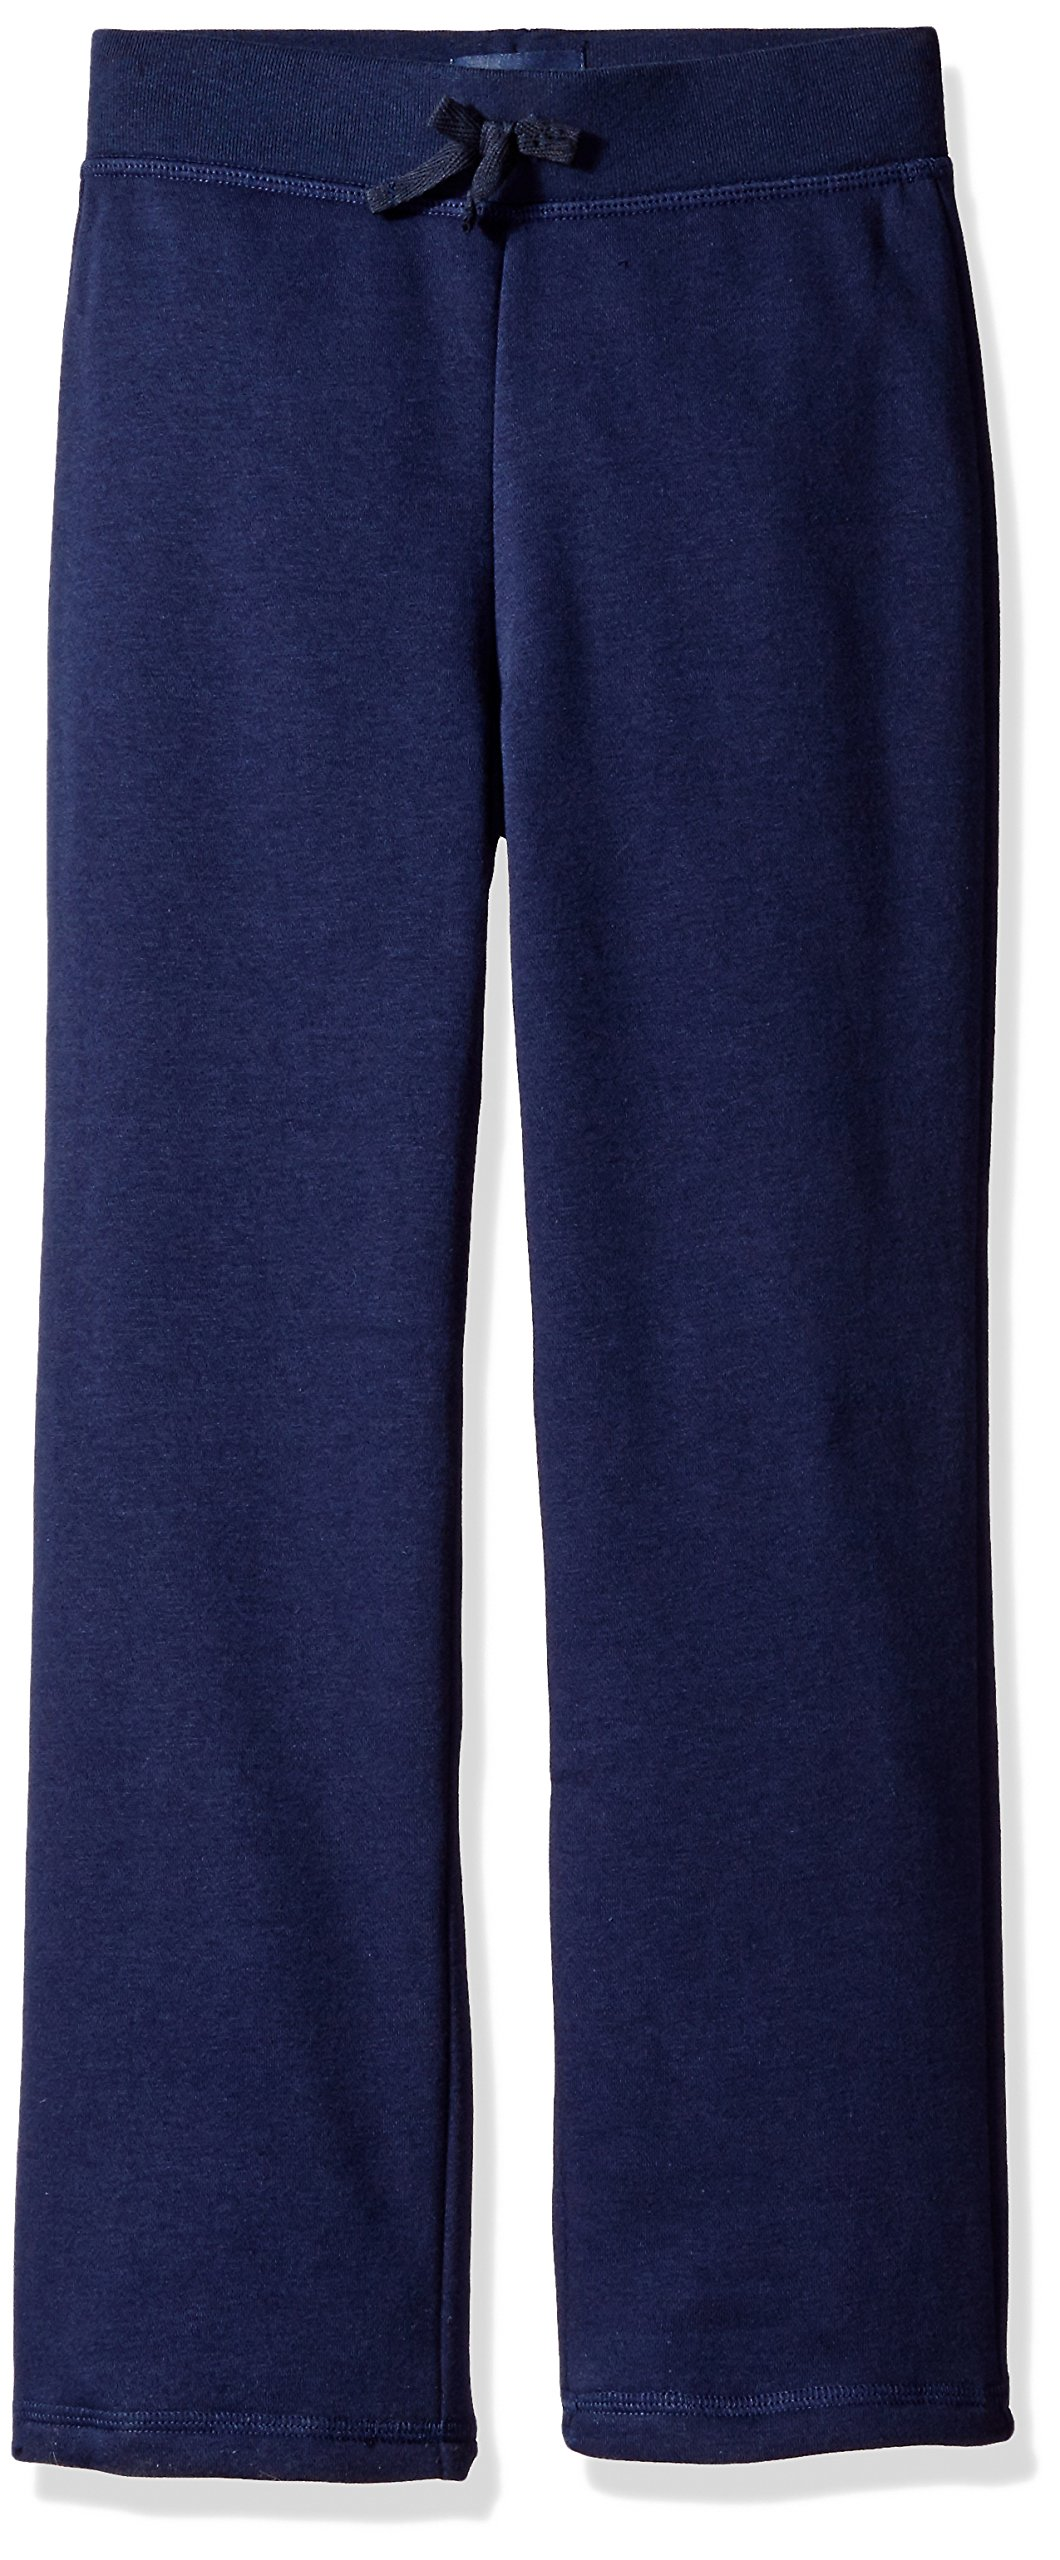 The Children's Place Little Girls' Gym Uniform Fleece Pant, Tidal, Small/5/6